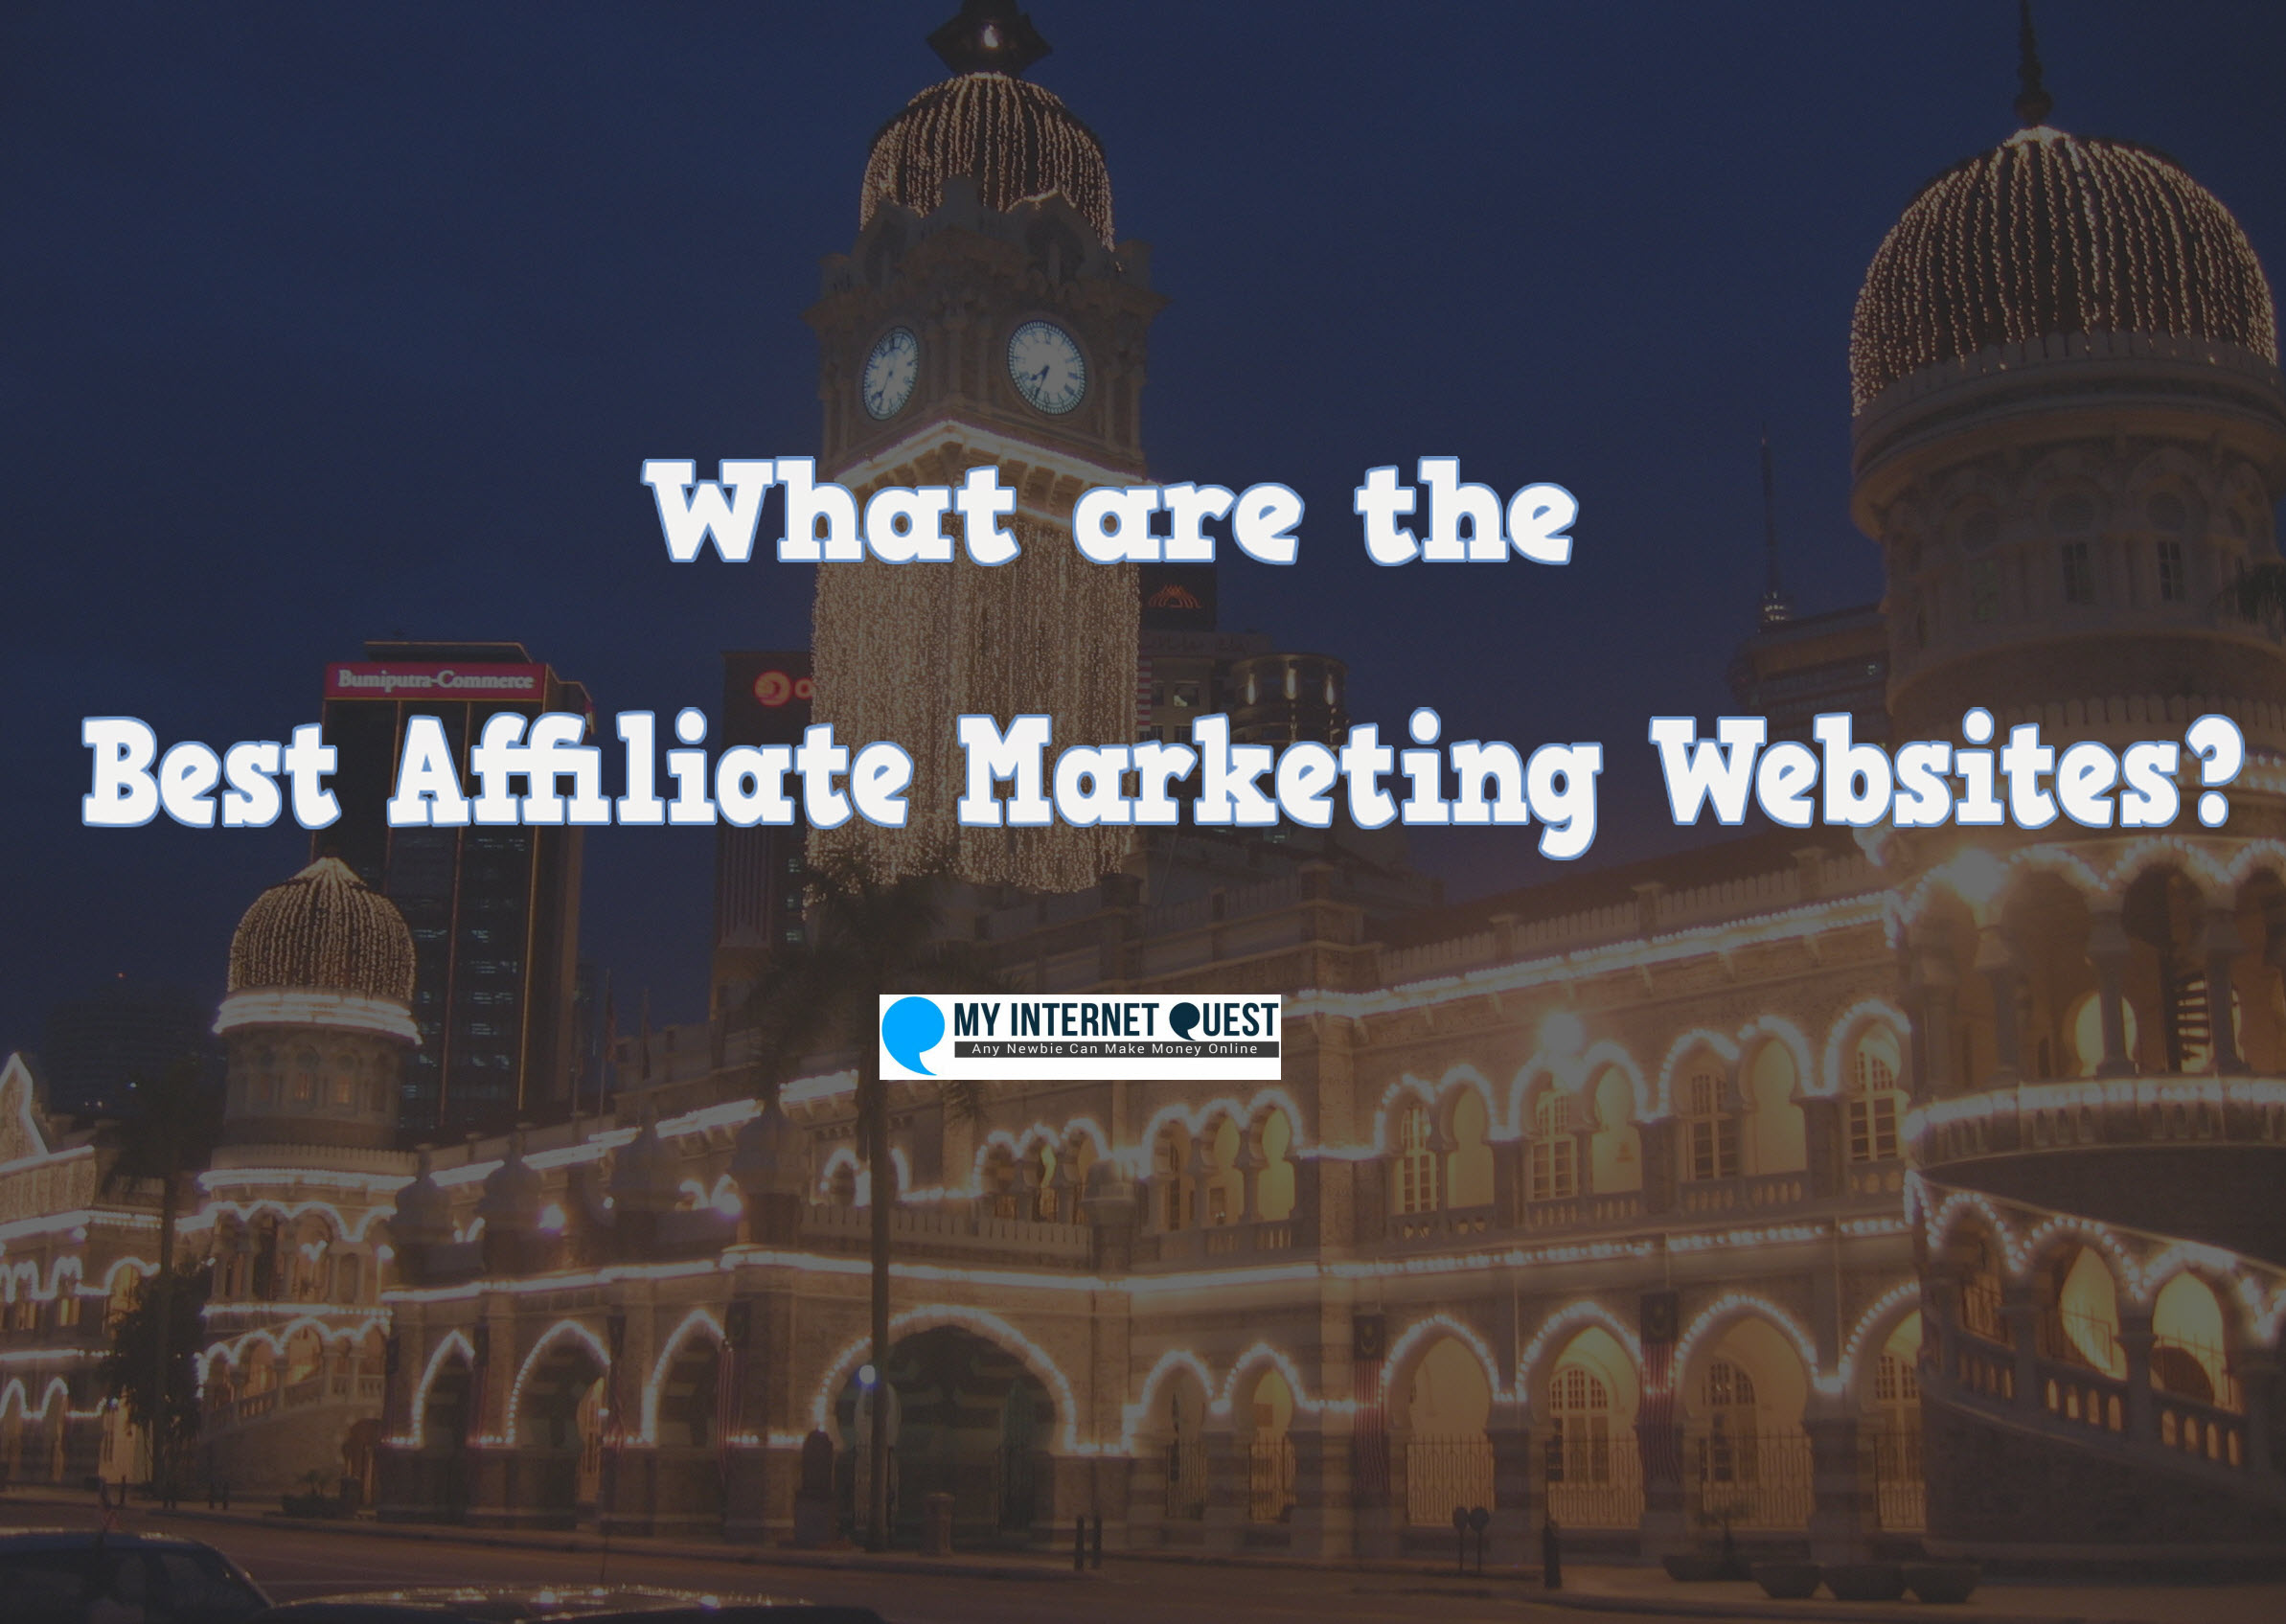 What are the best affiliate marketing websites